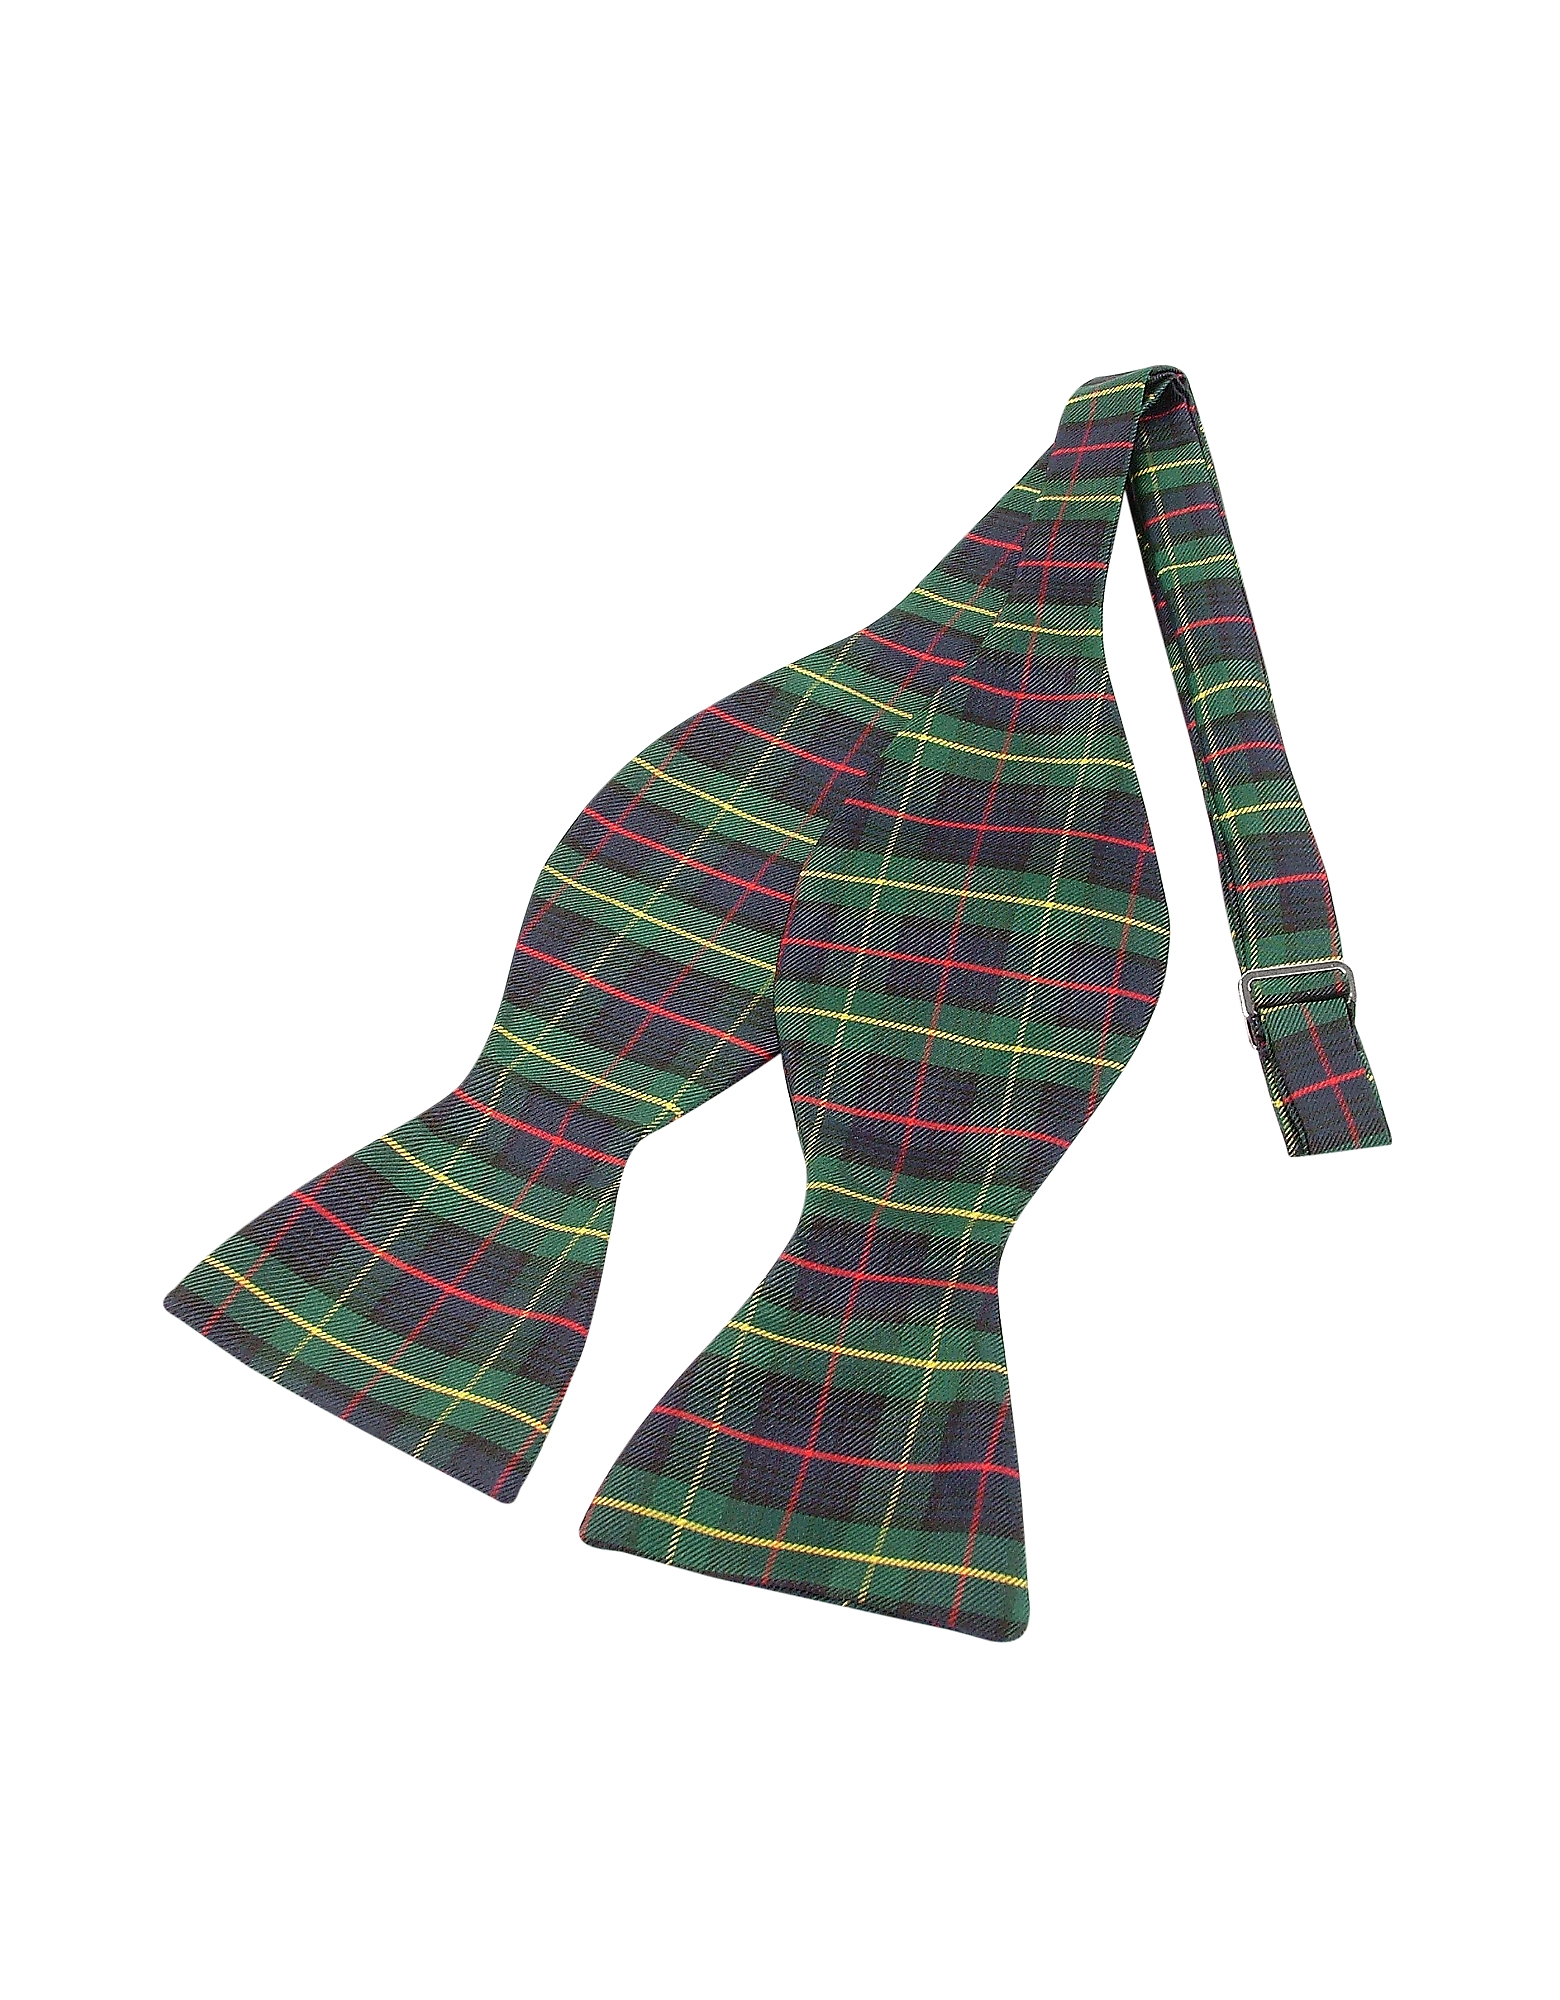 Forzieri Bowties and Cummerbunds, Green Plaid Printed Silk Self-tie Bowtie